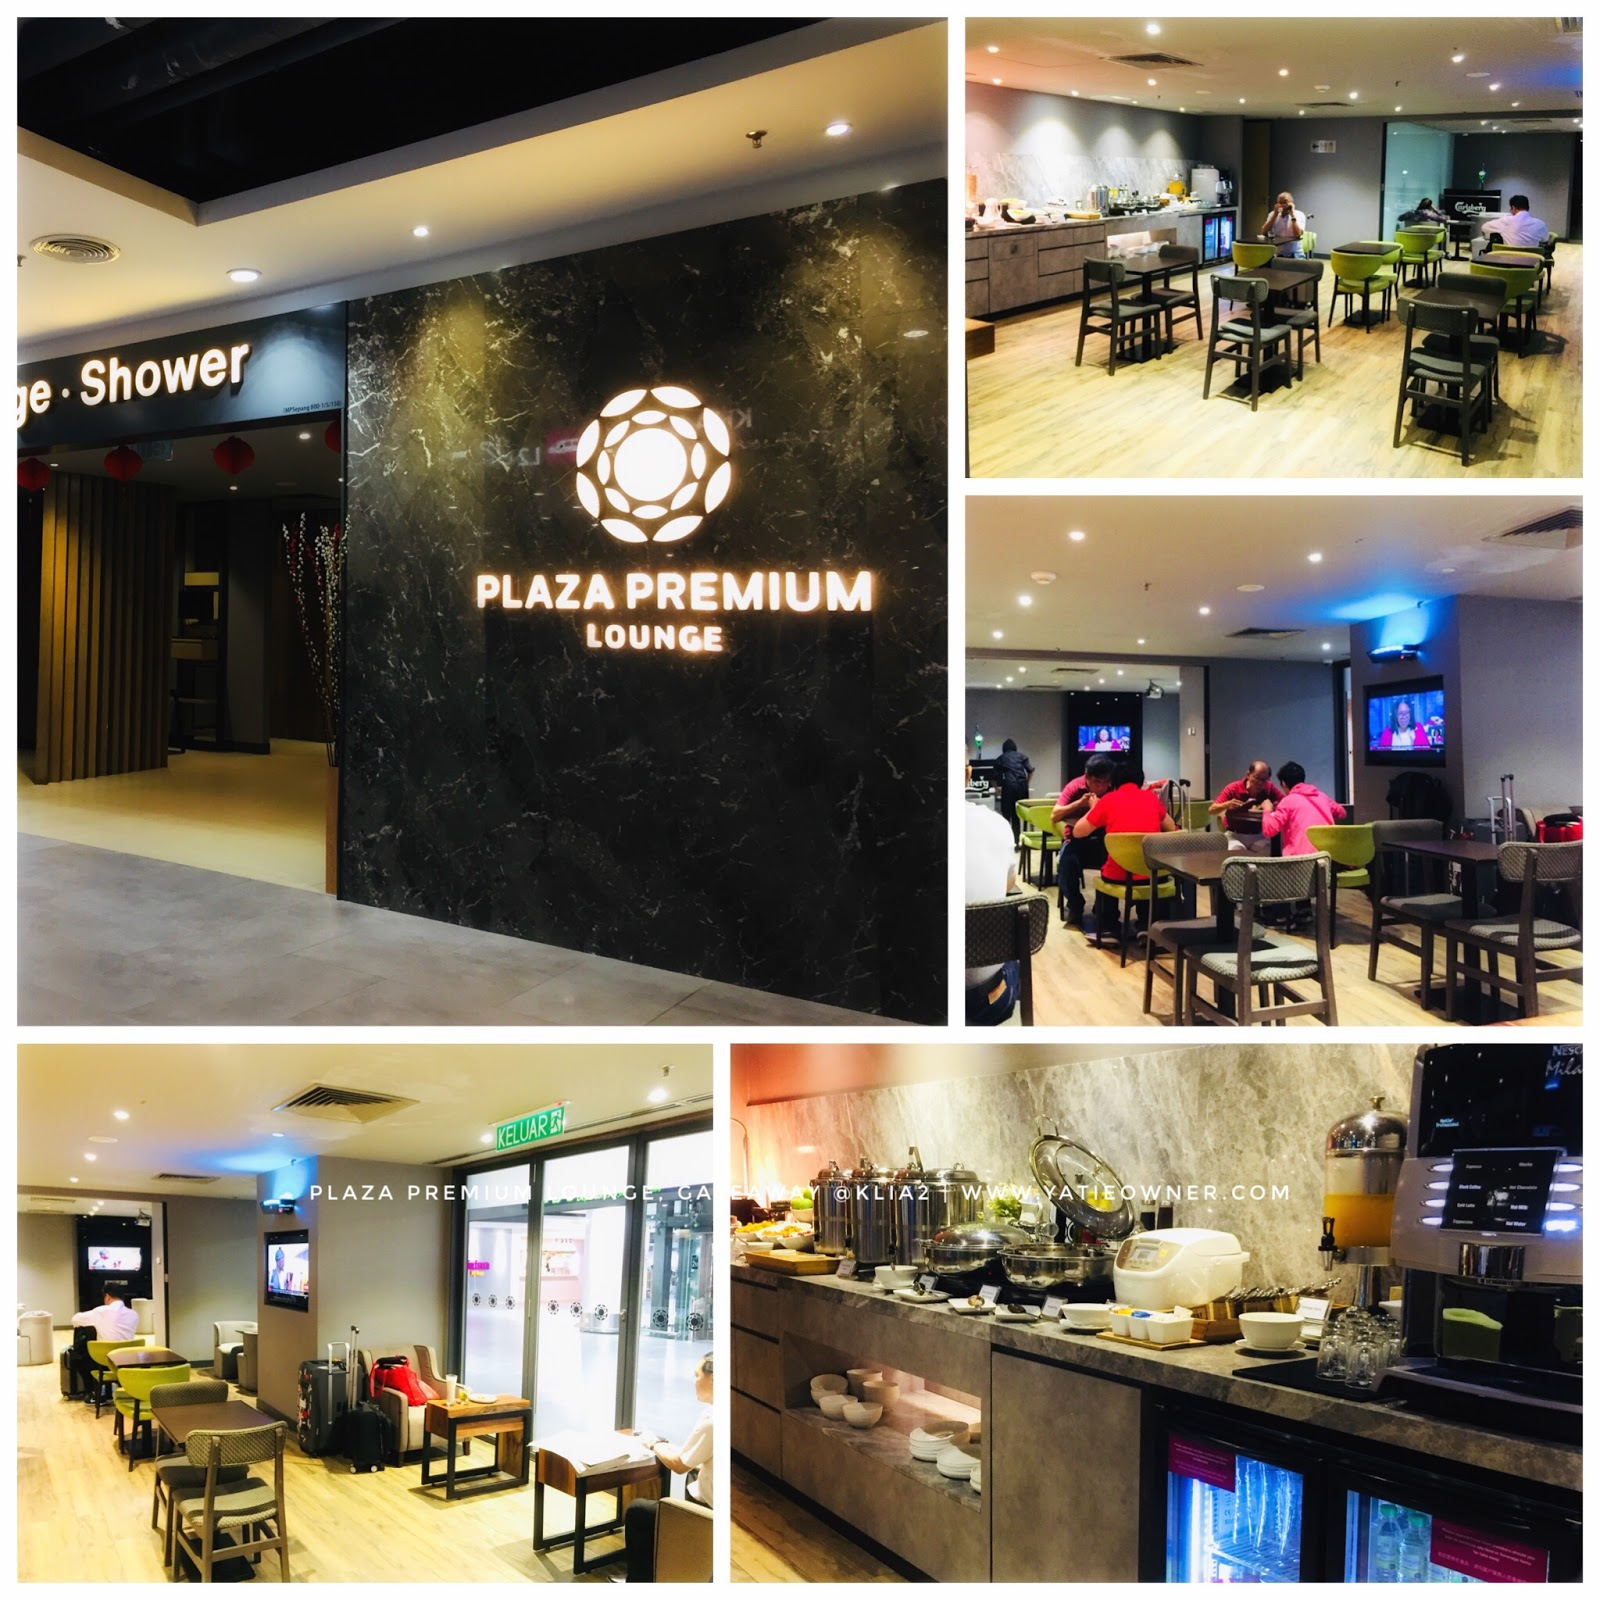 Plaza Premium Lounge Gateaway @Klia2 Must Try!